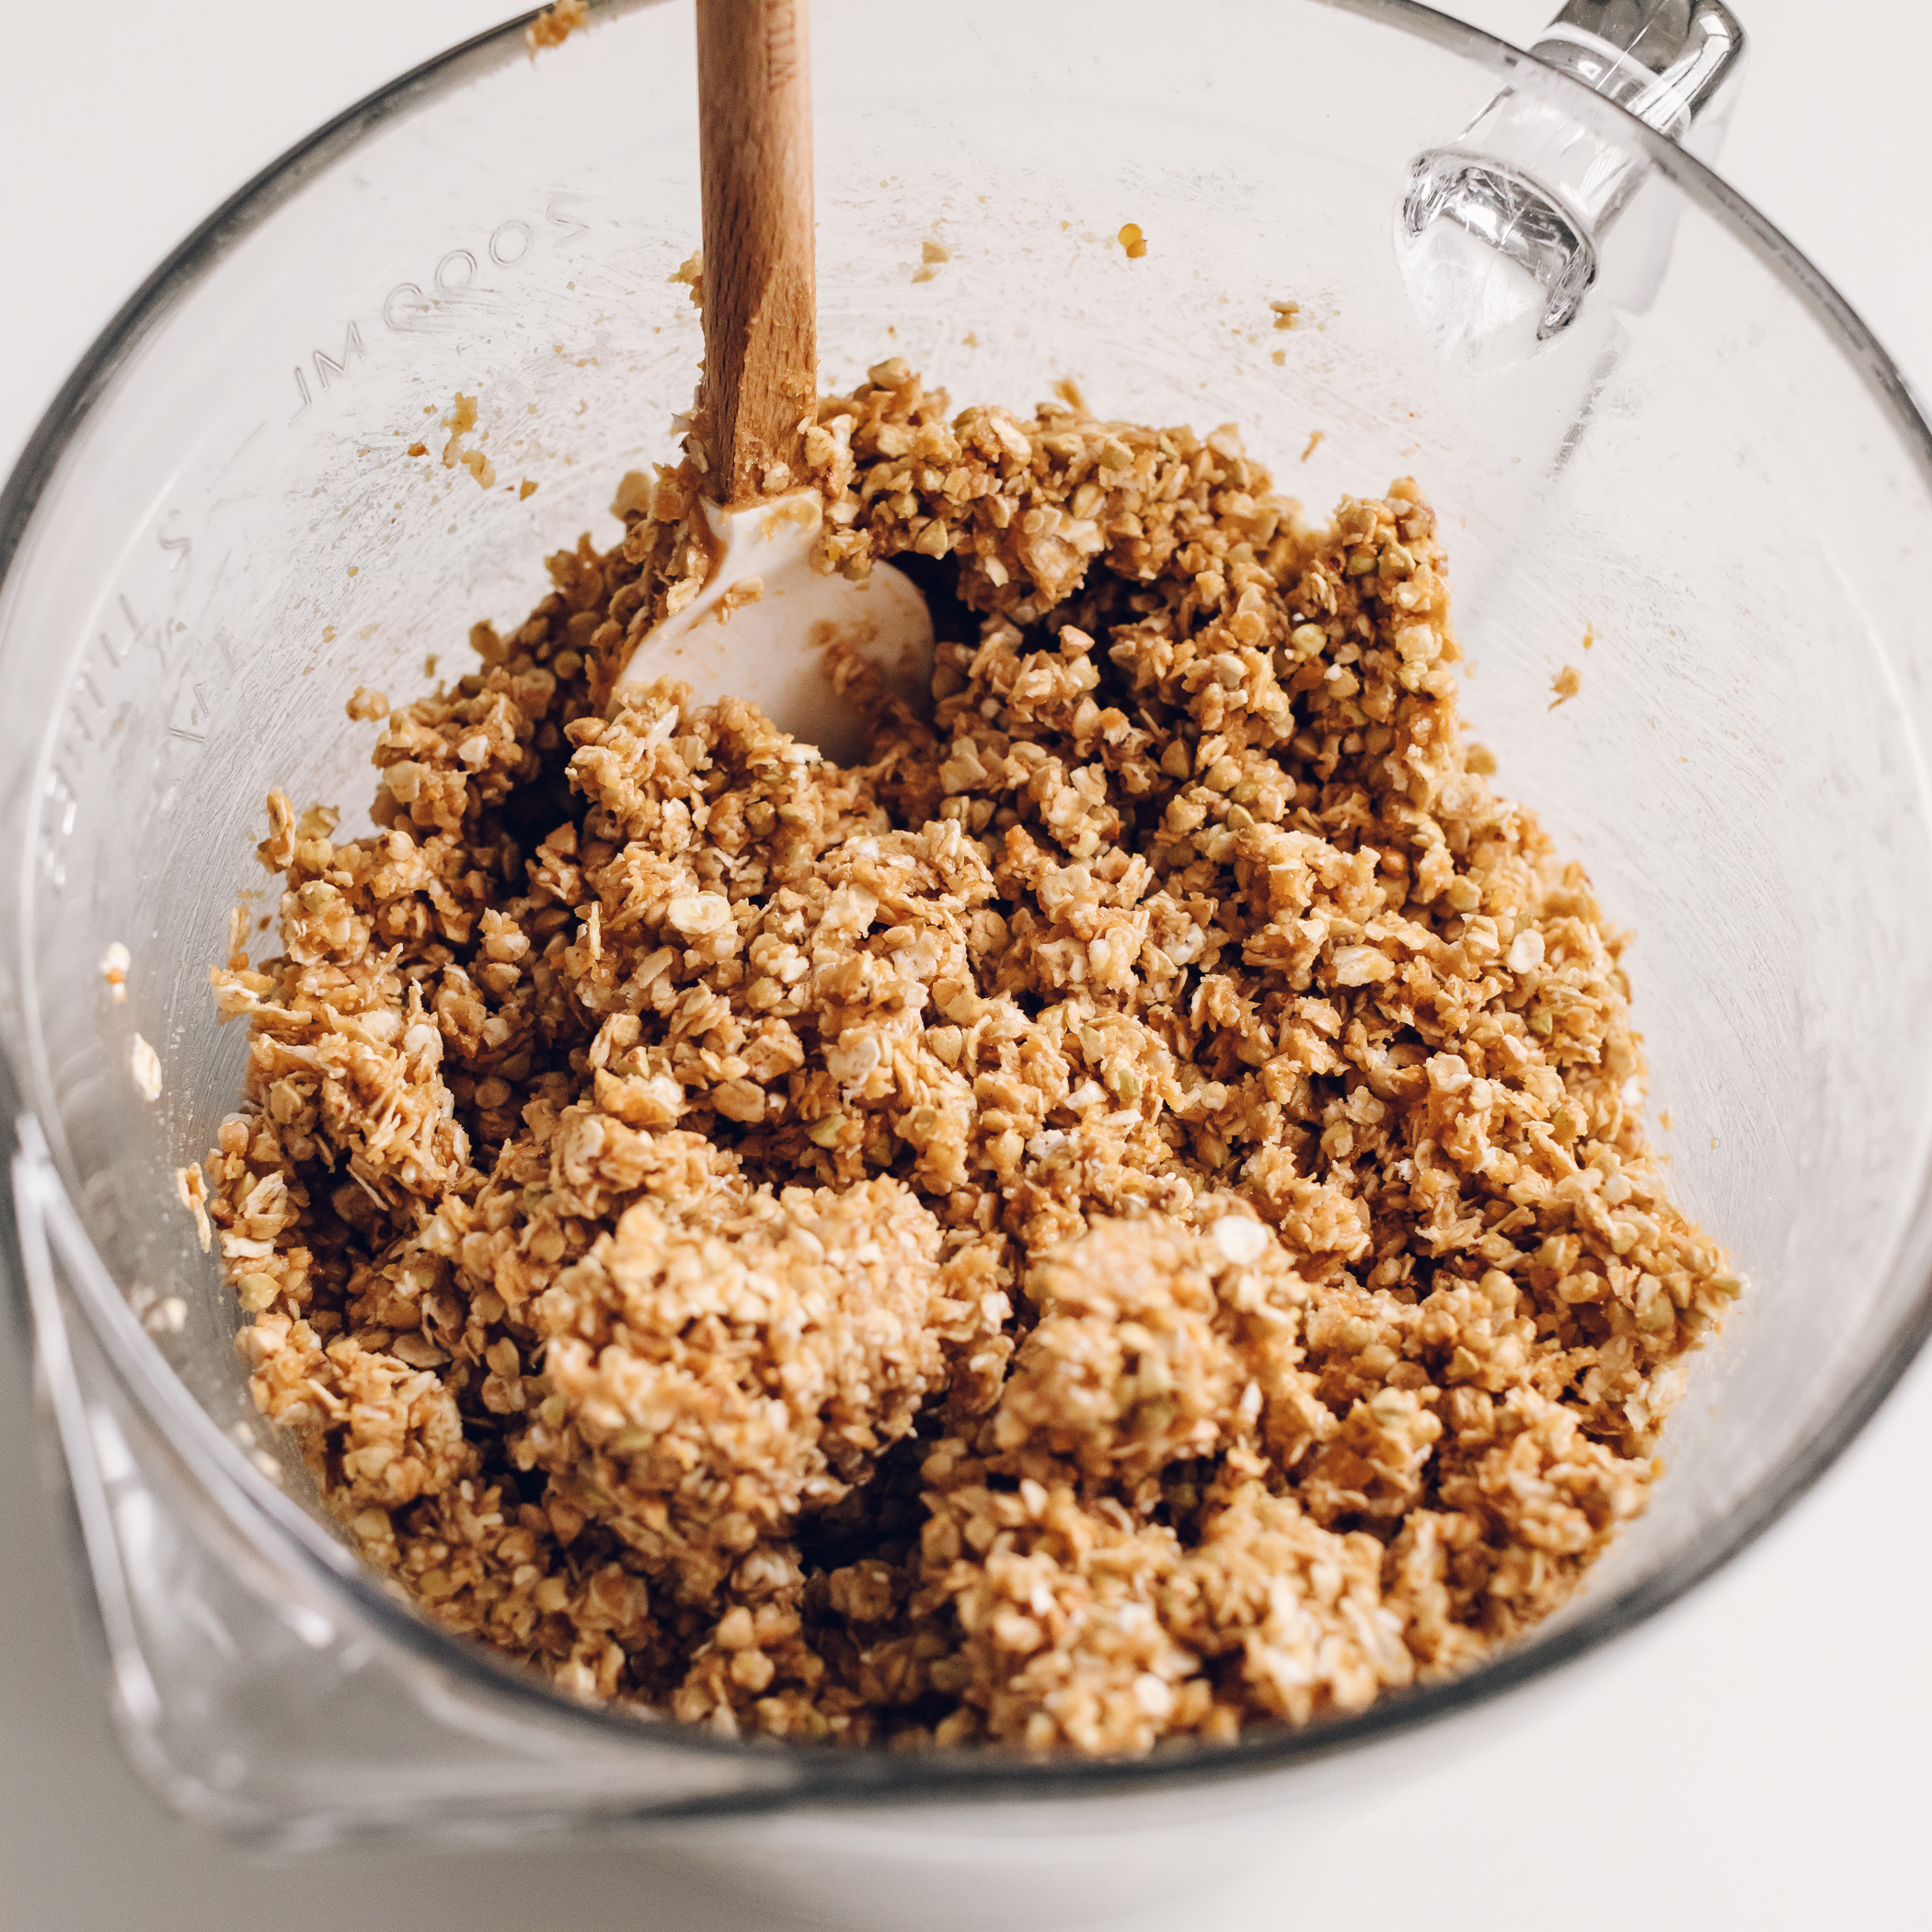 Peanut Butter Granola by Jessie May